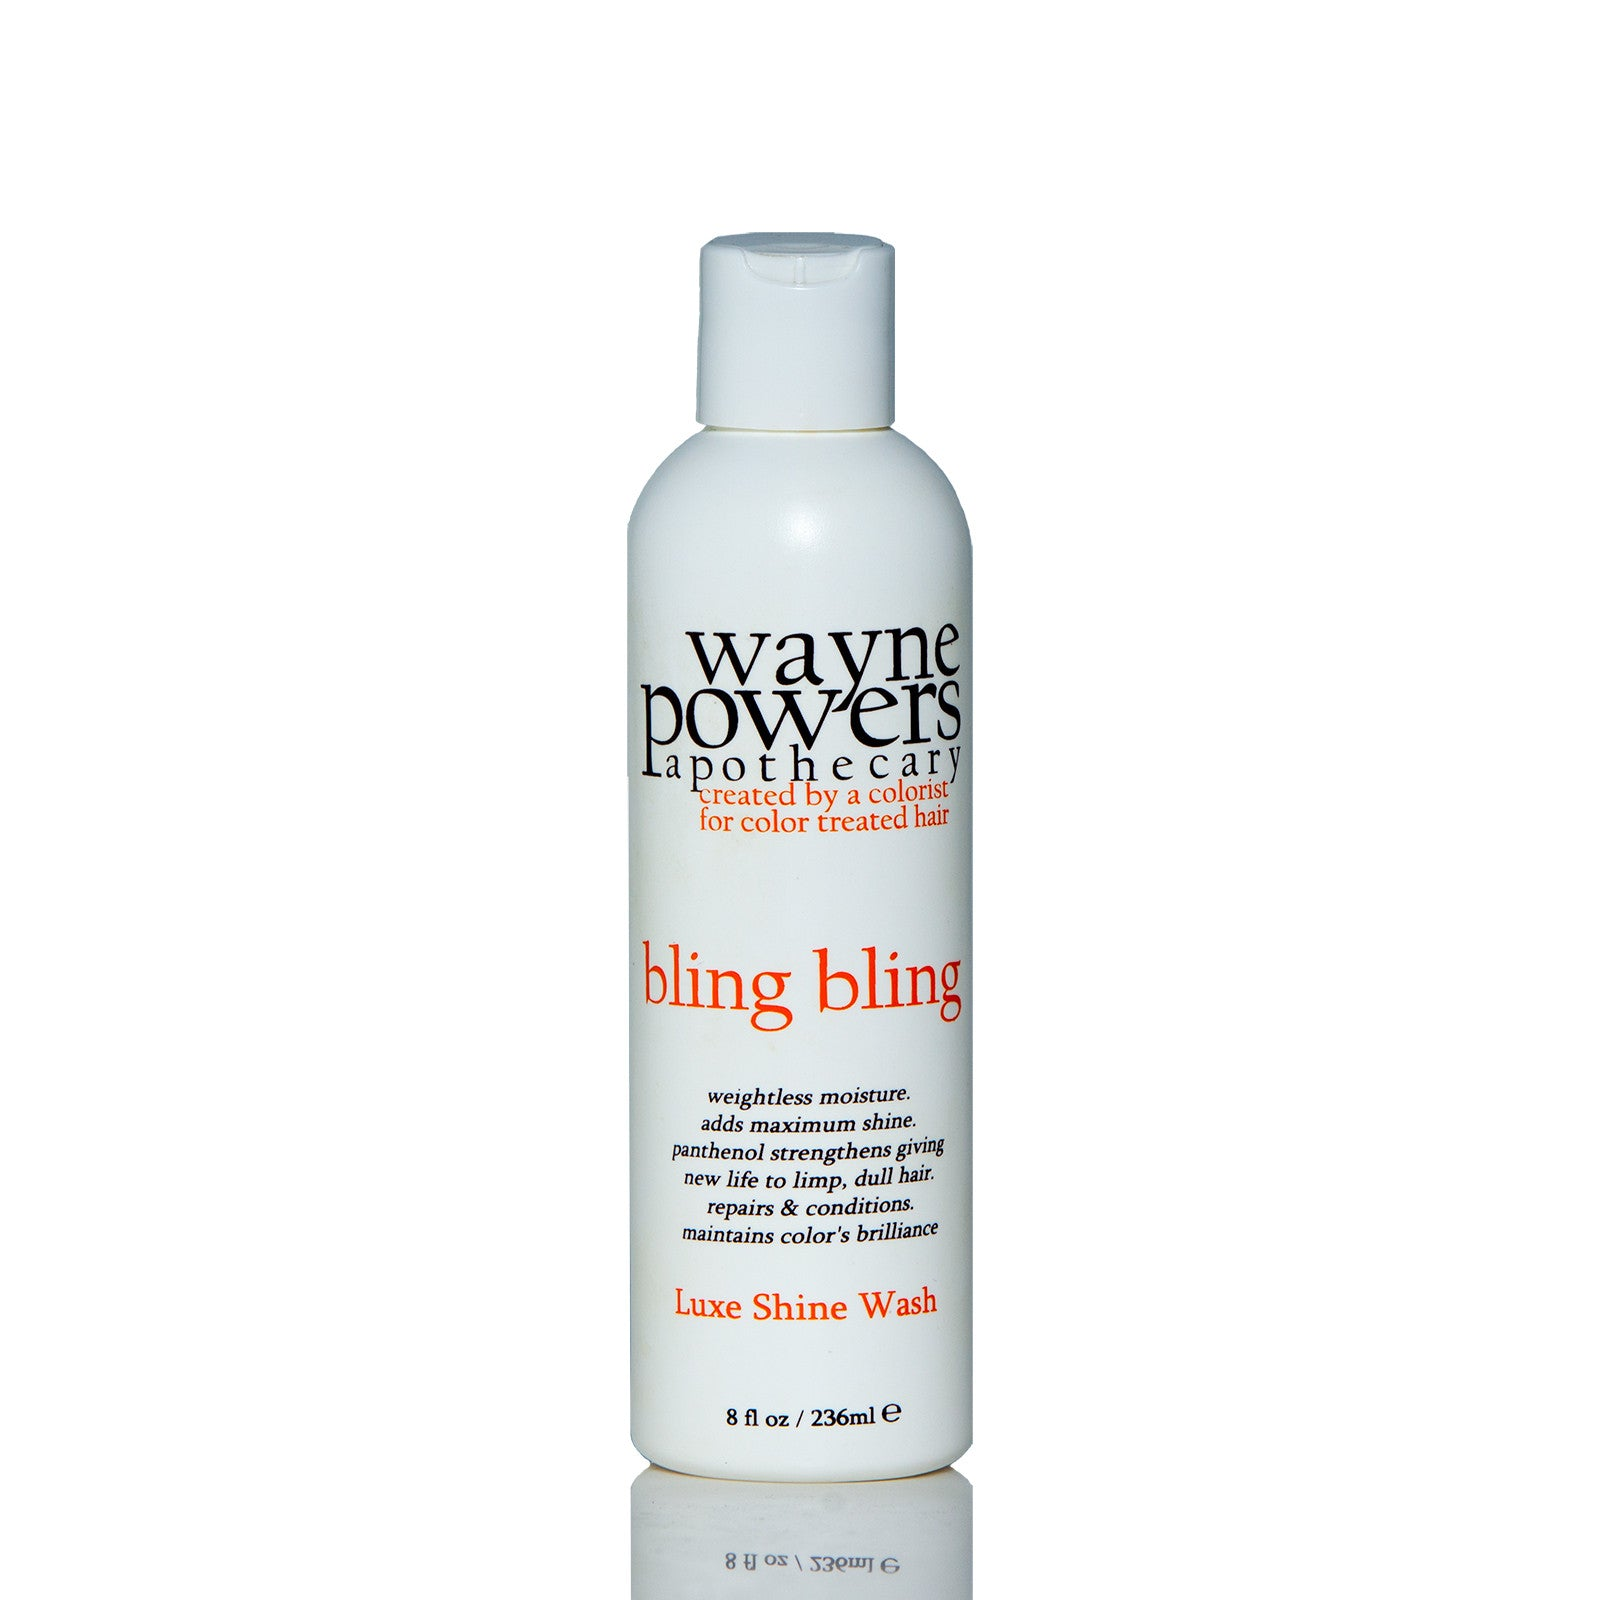 Bling Bling Luxe Shine Wash by Wayne Powers Apothecary